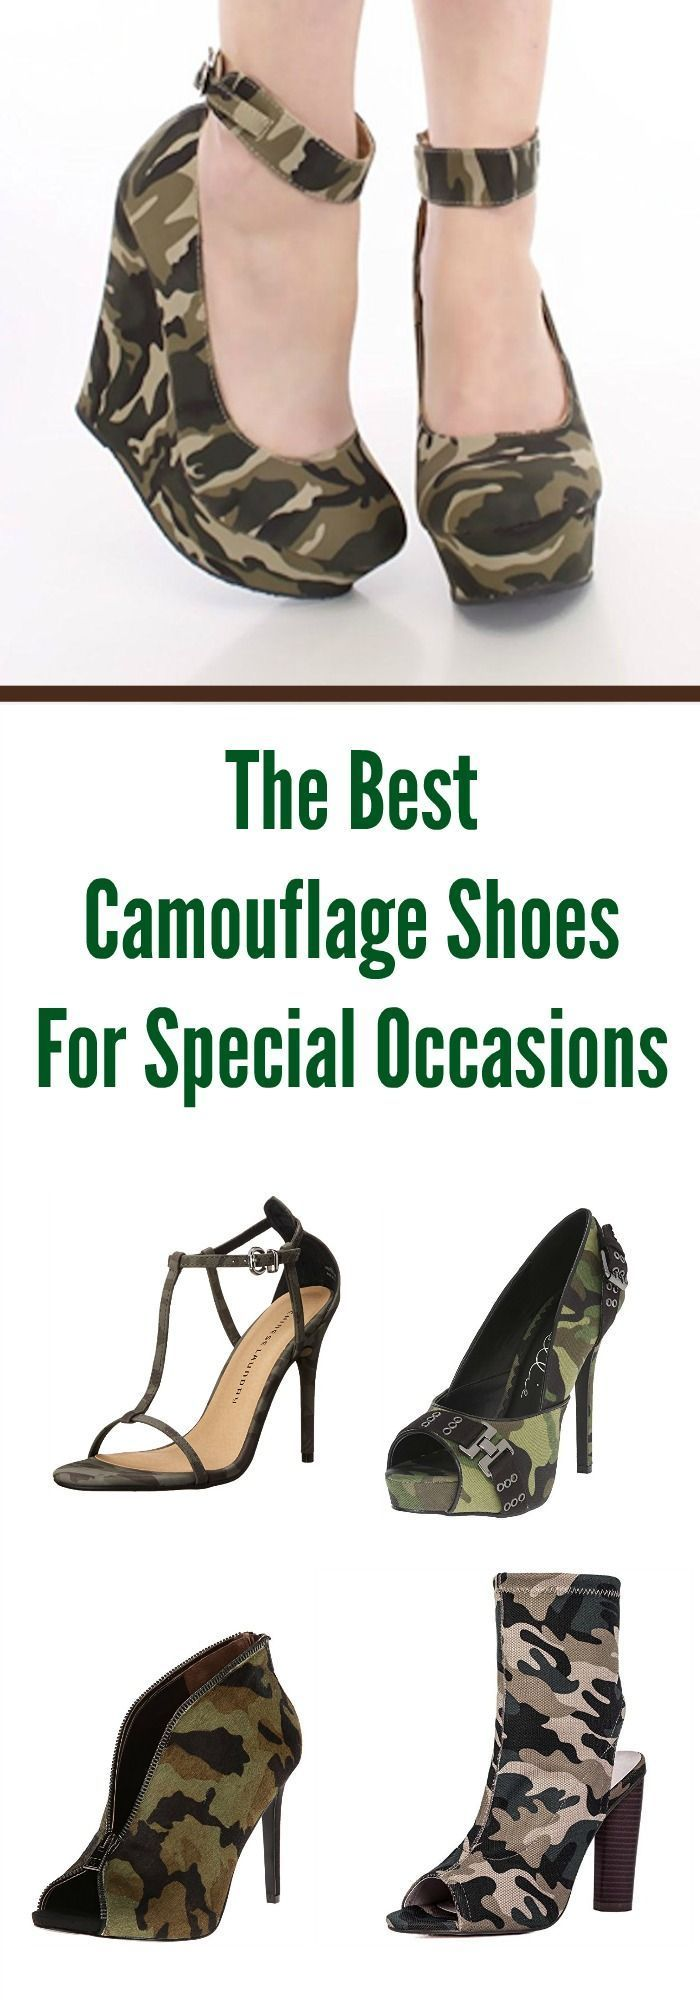 The Best Camouflage Shoes For Special Occasions #camo #camouflage #camouflageshoes #camoshoes